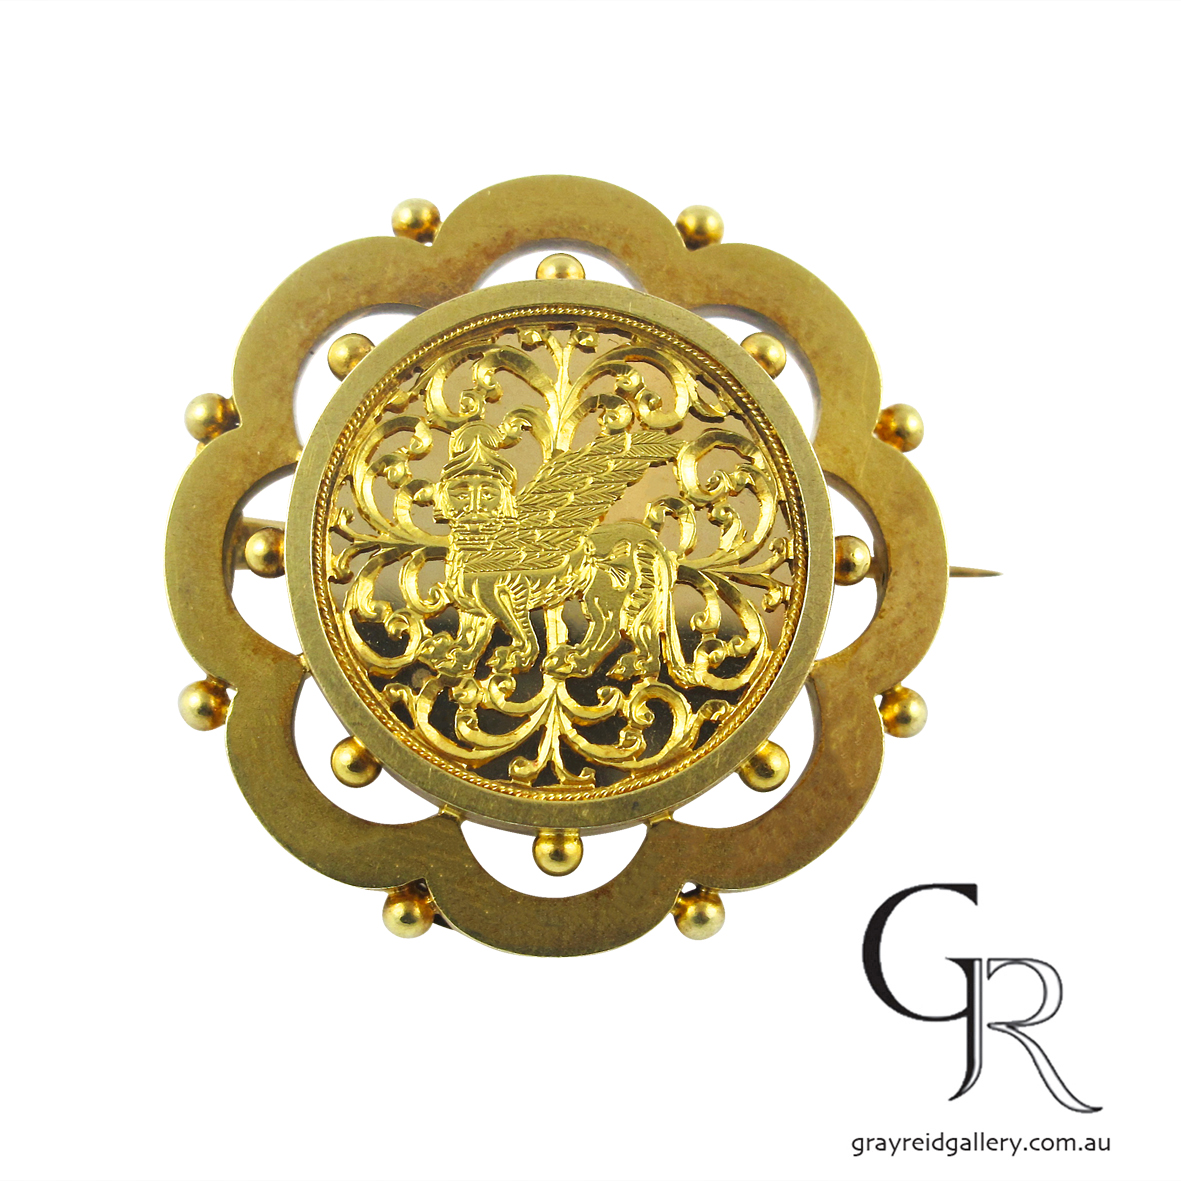 assyrian revival brooch melbourne gray reid gallery yellow gold.jpg